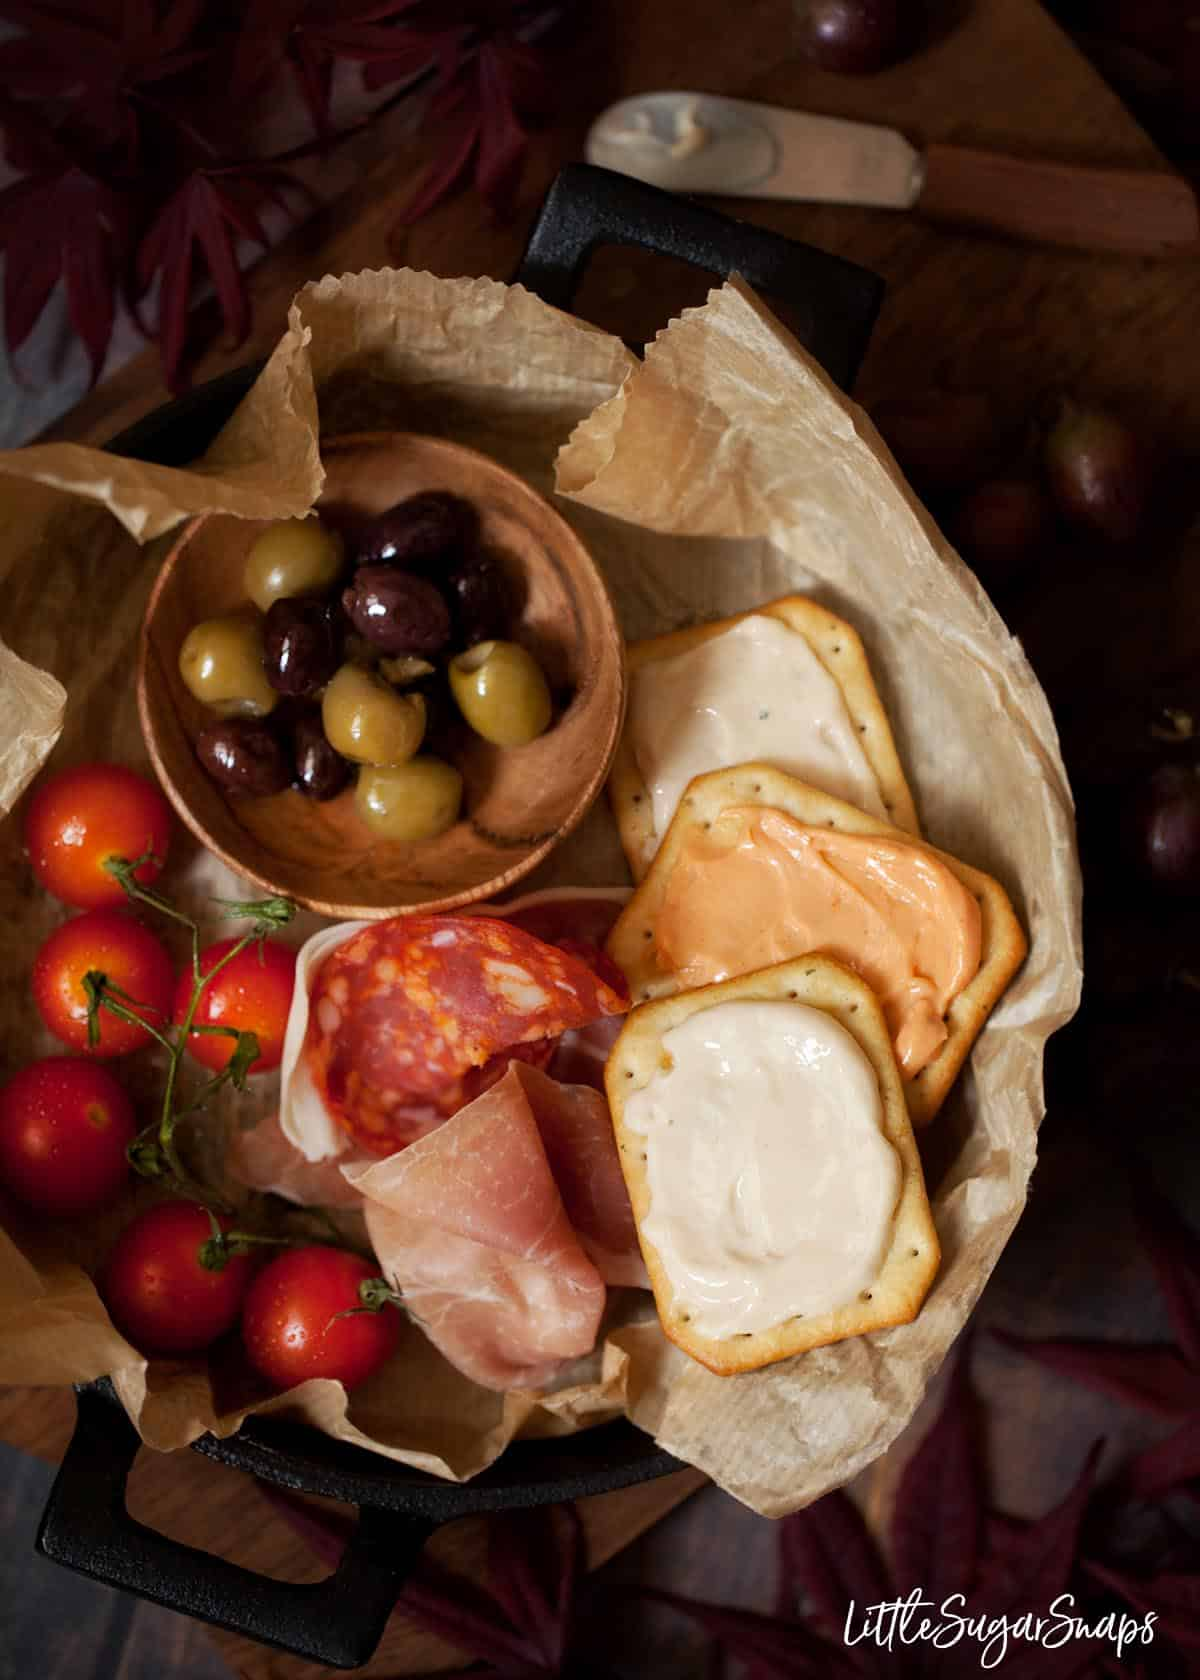 A tray of crackers topped with cheese spread served with olives, cured meats and cherry tomatoes on the vine.